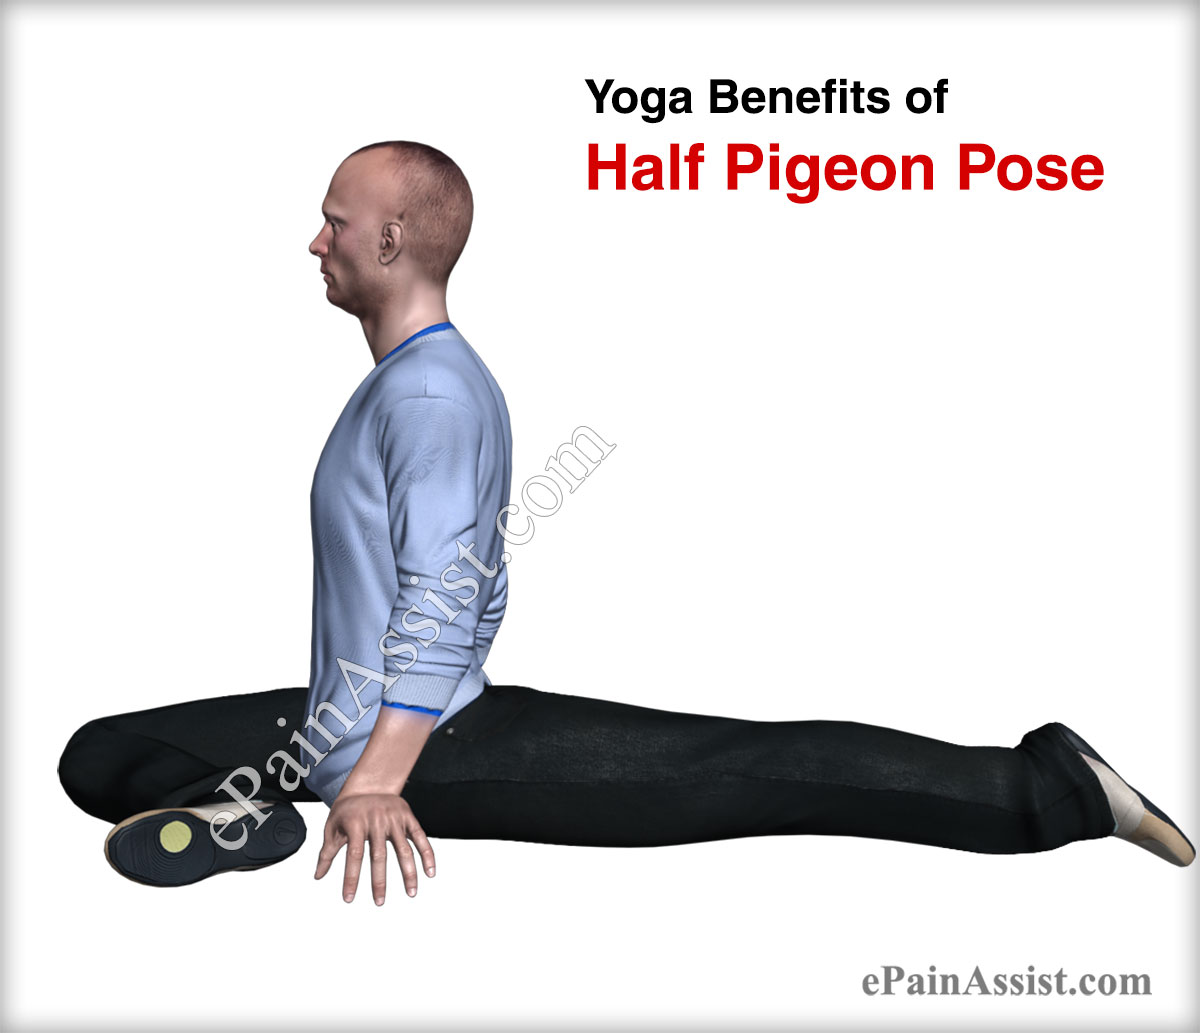 Yoga Benefits of Half Pigeon Pose for Men